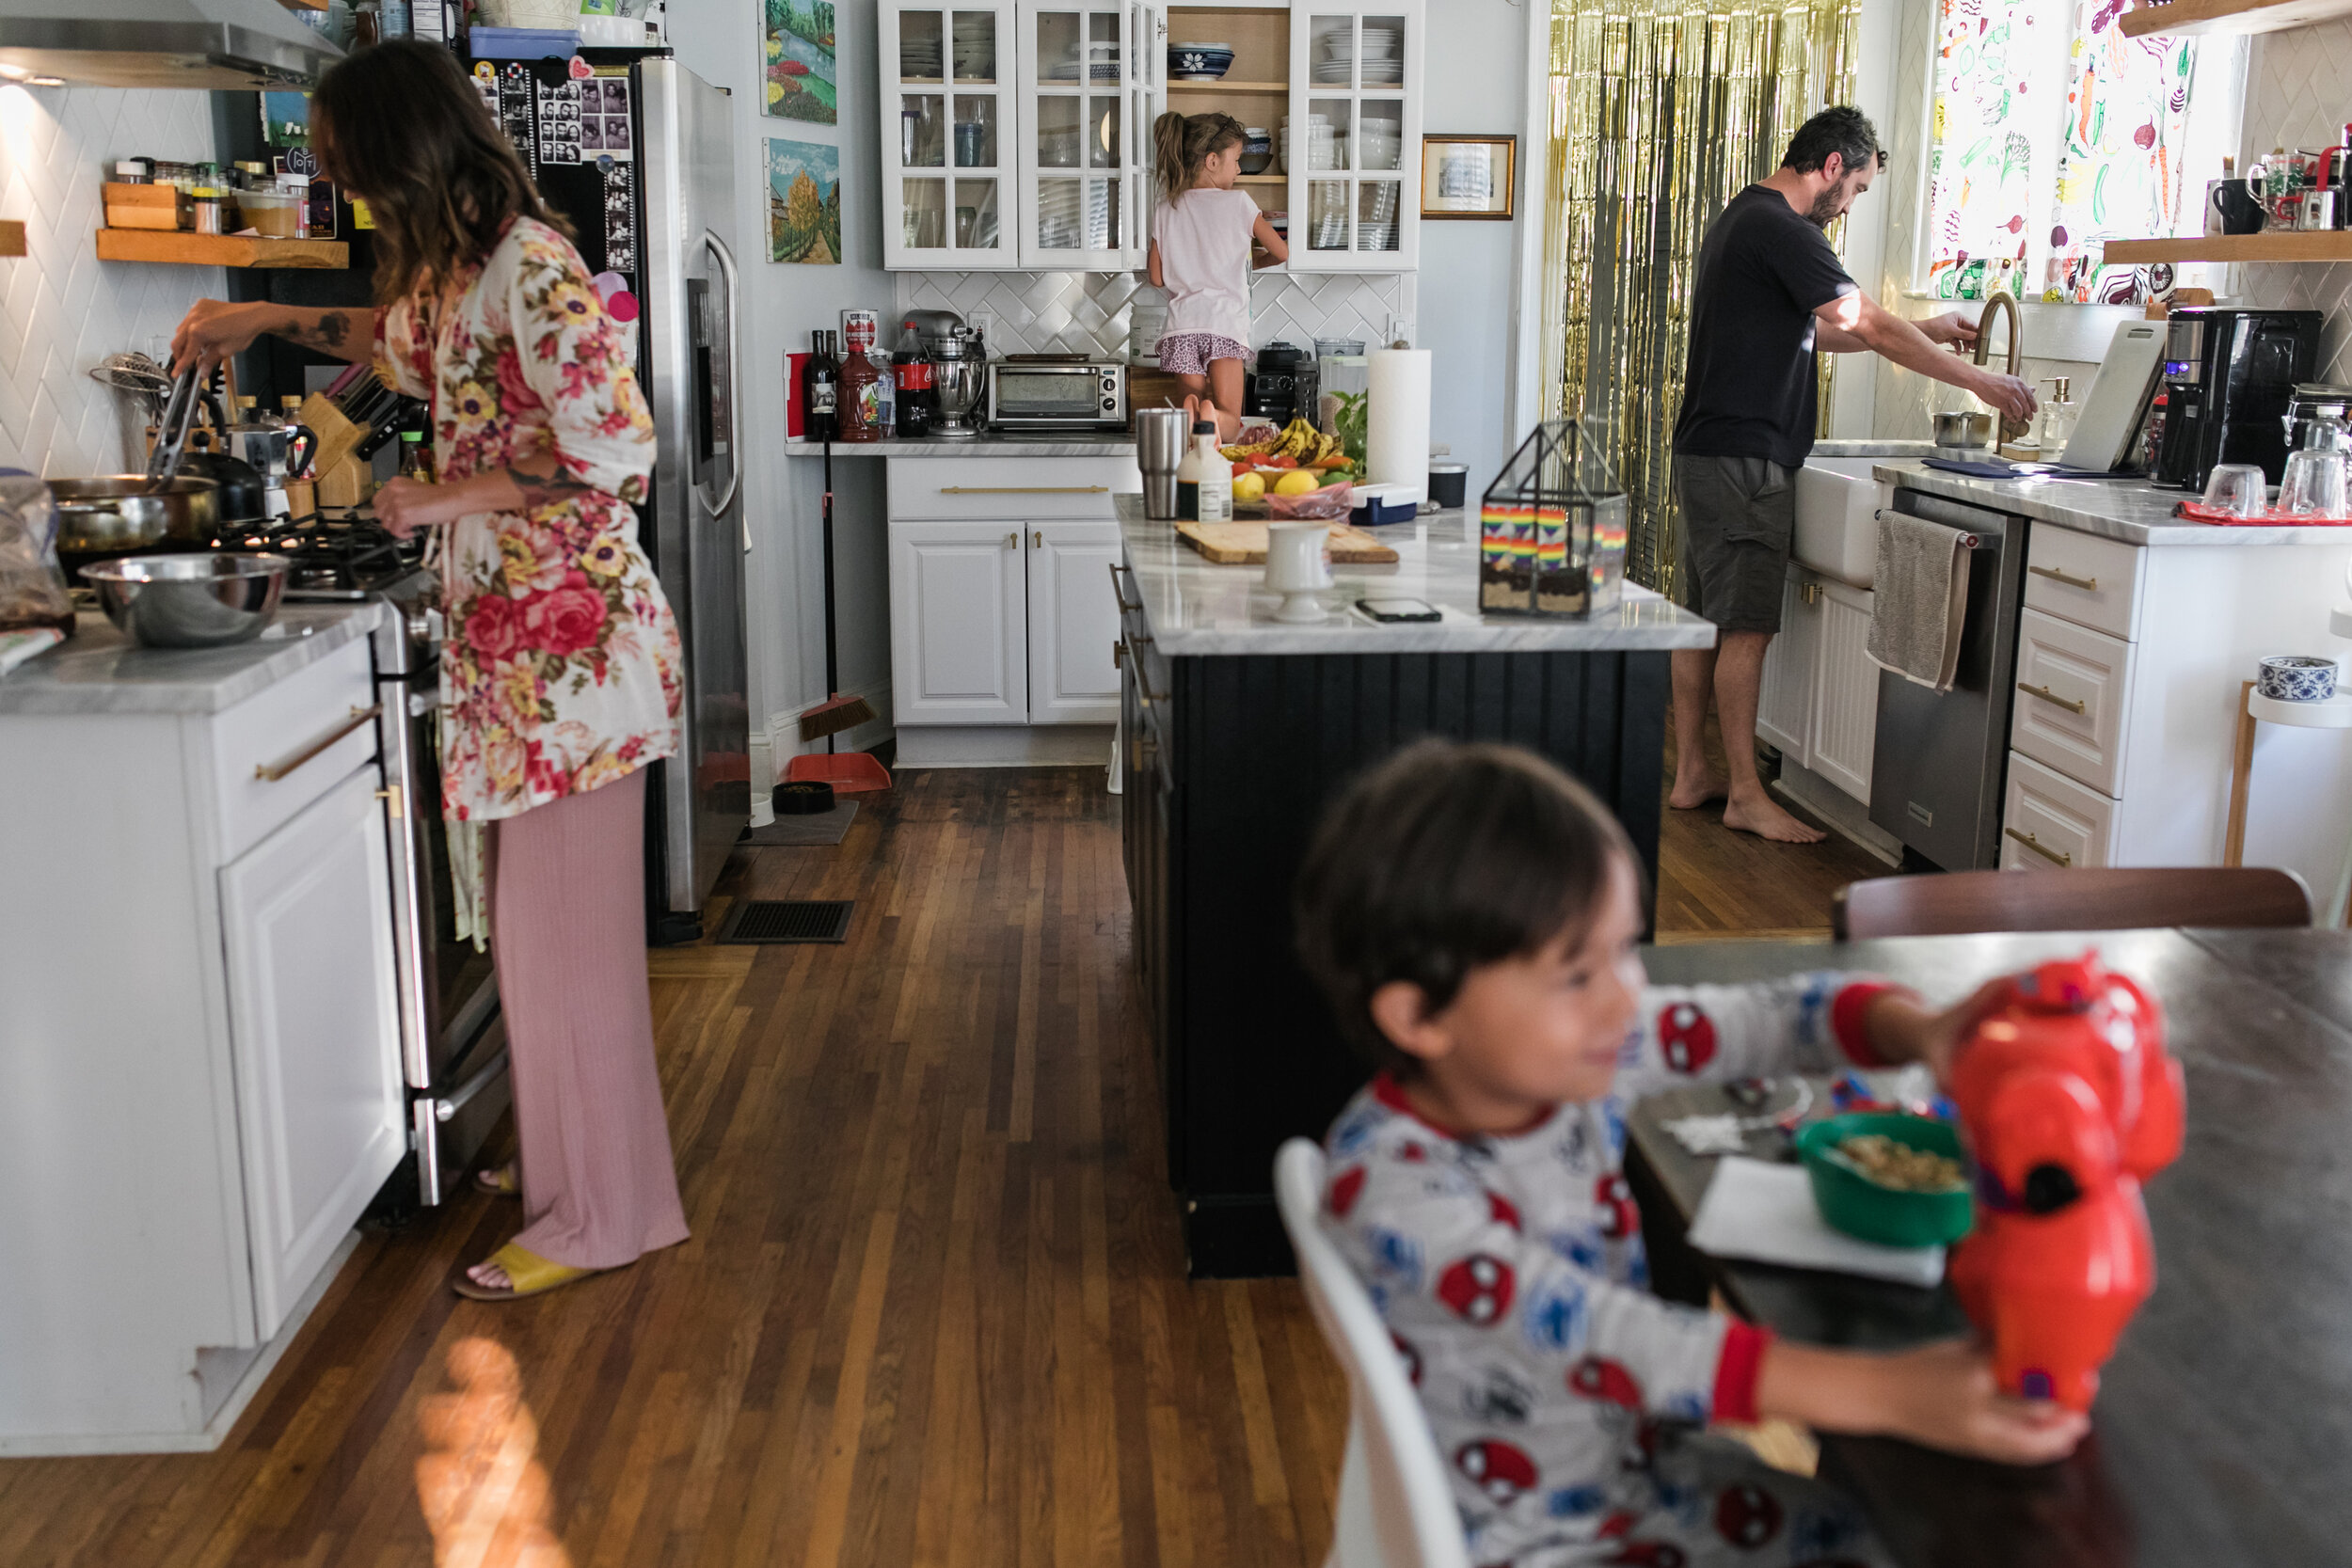 image of a family in a kitchen preparing breakfast from a day in the life photography session